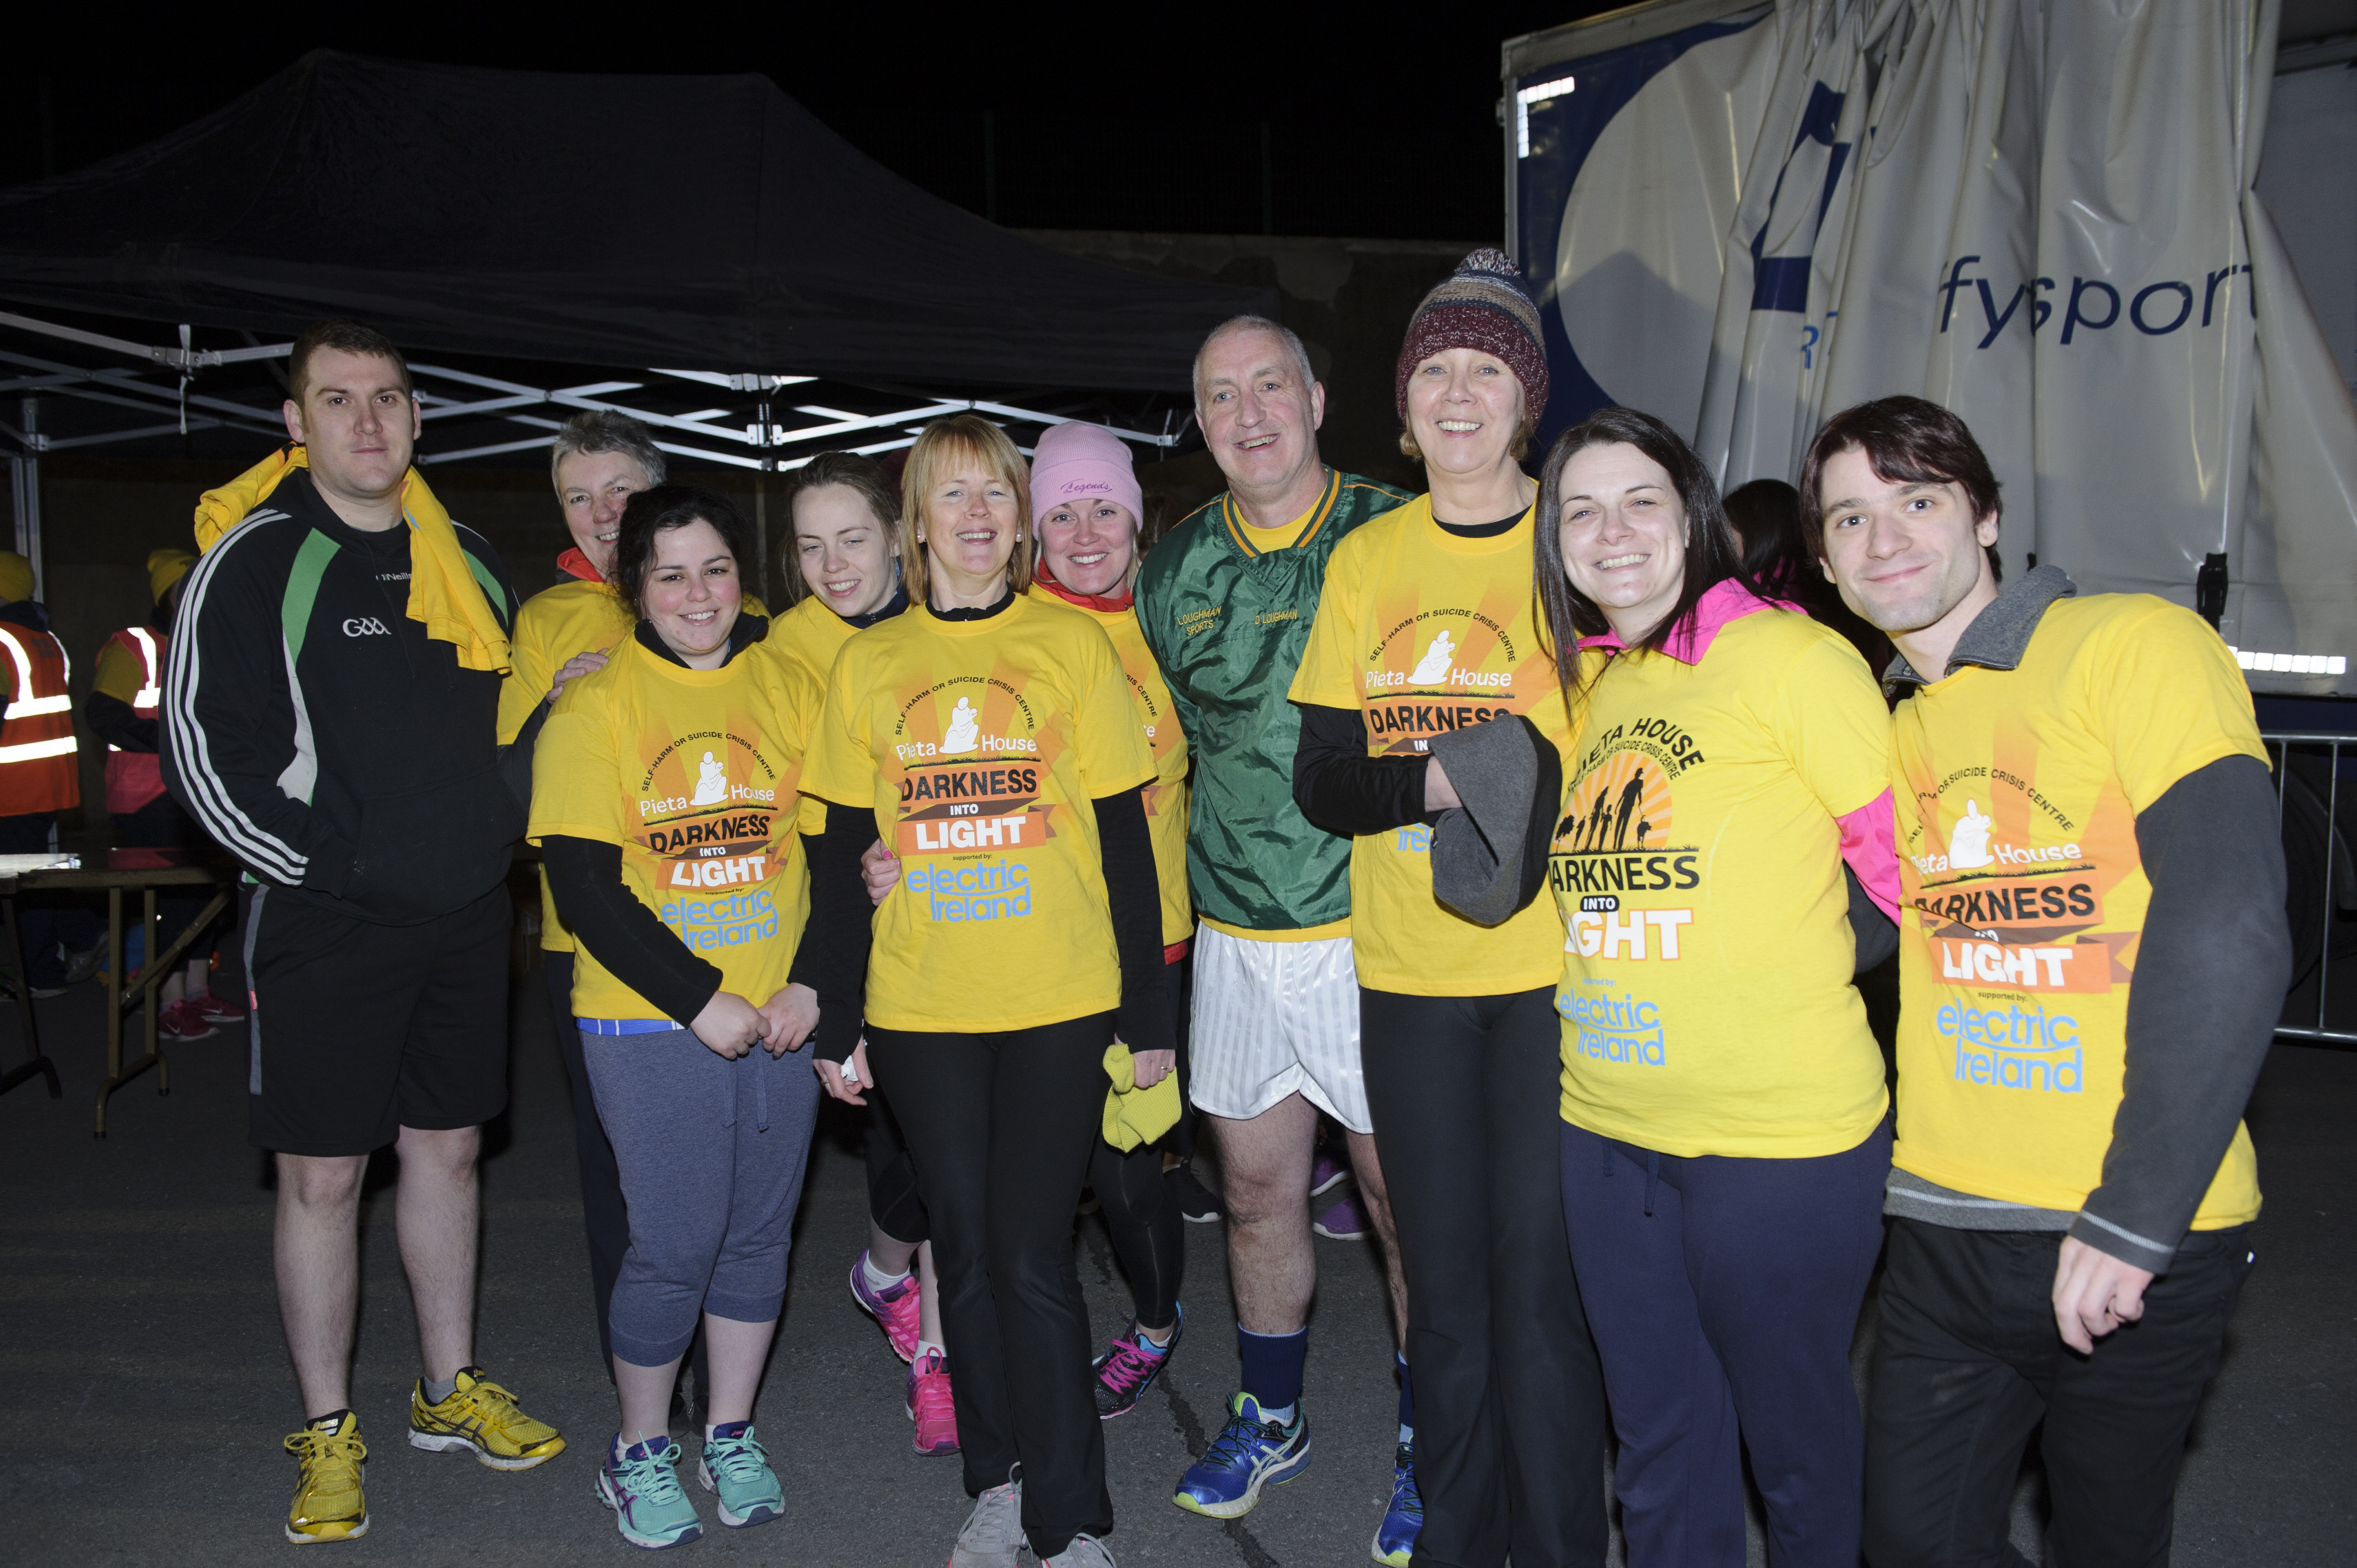 Declan Loughman Sports and Coyle's Pharmacy staff, who took part in the Darkness Into Light at the Monaghan Harps GFC. ©Rory Geary/The Northern Standard